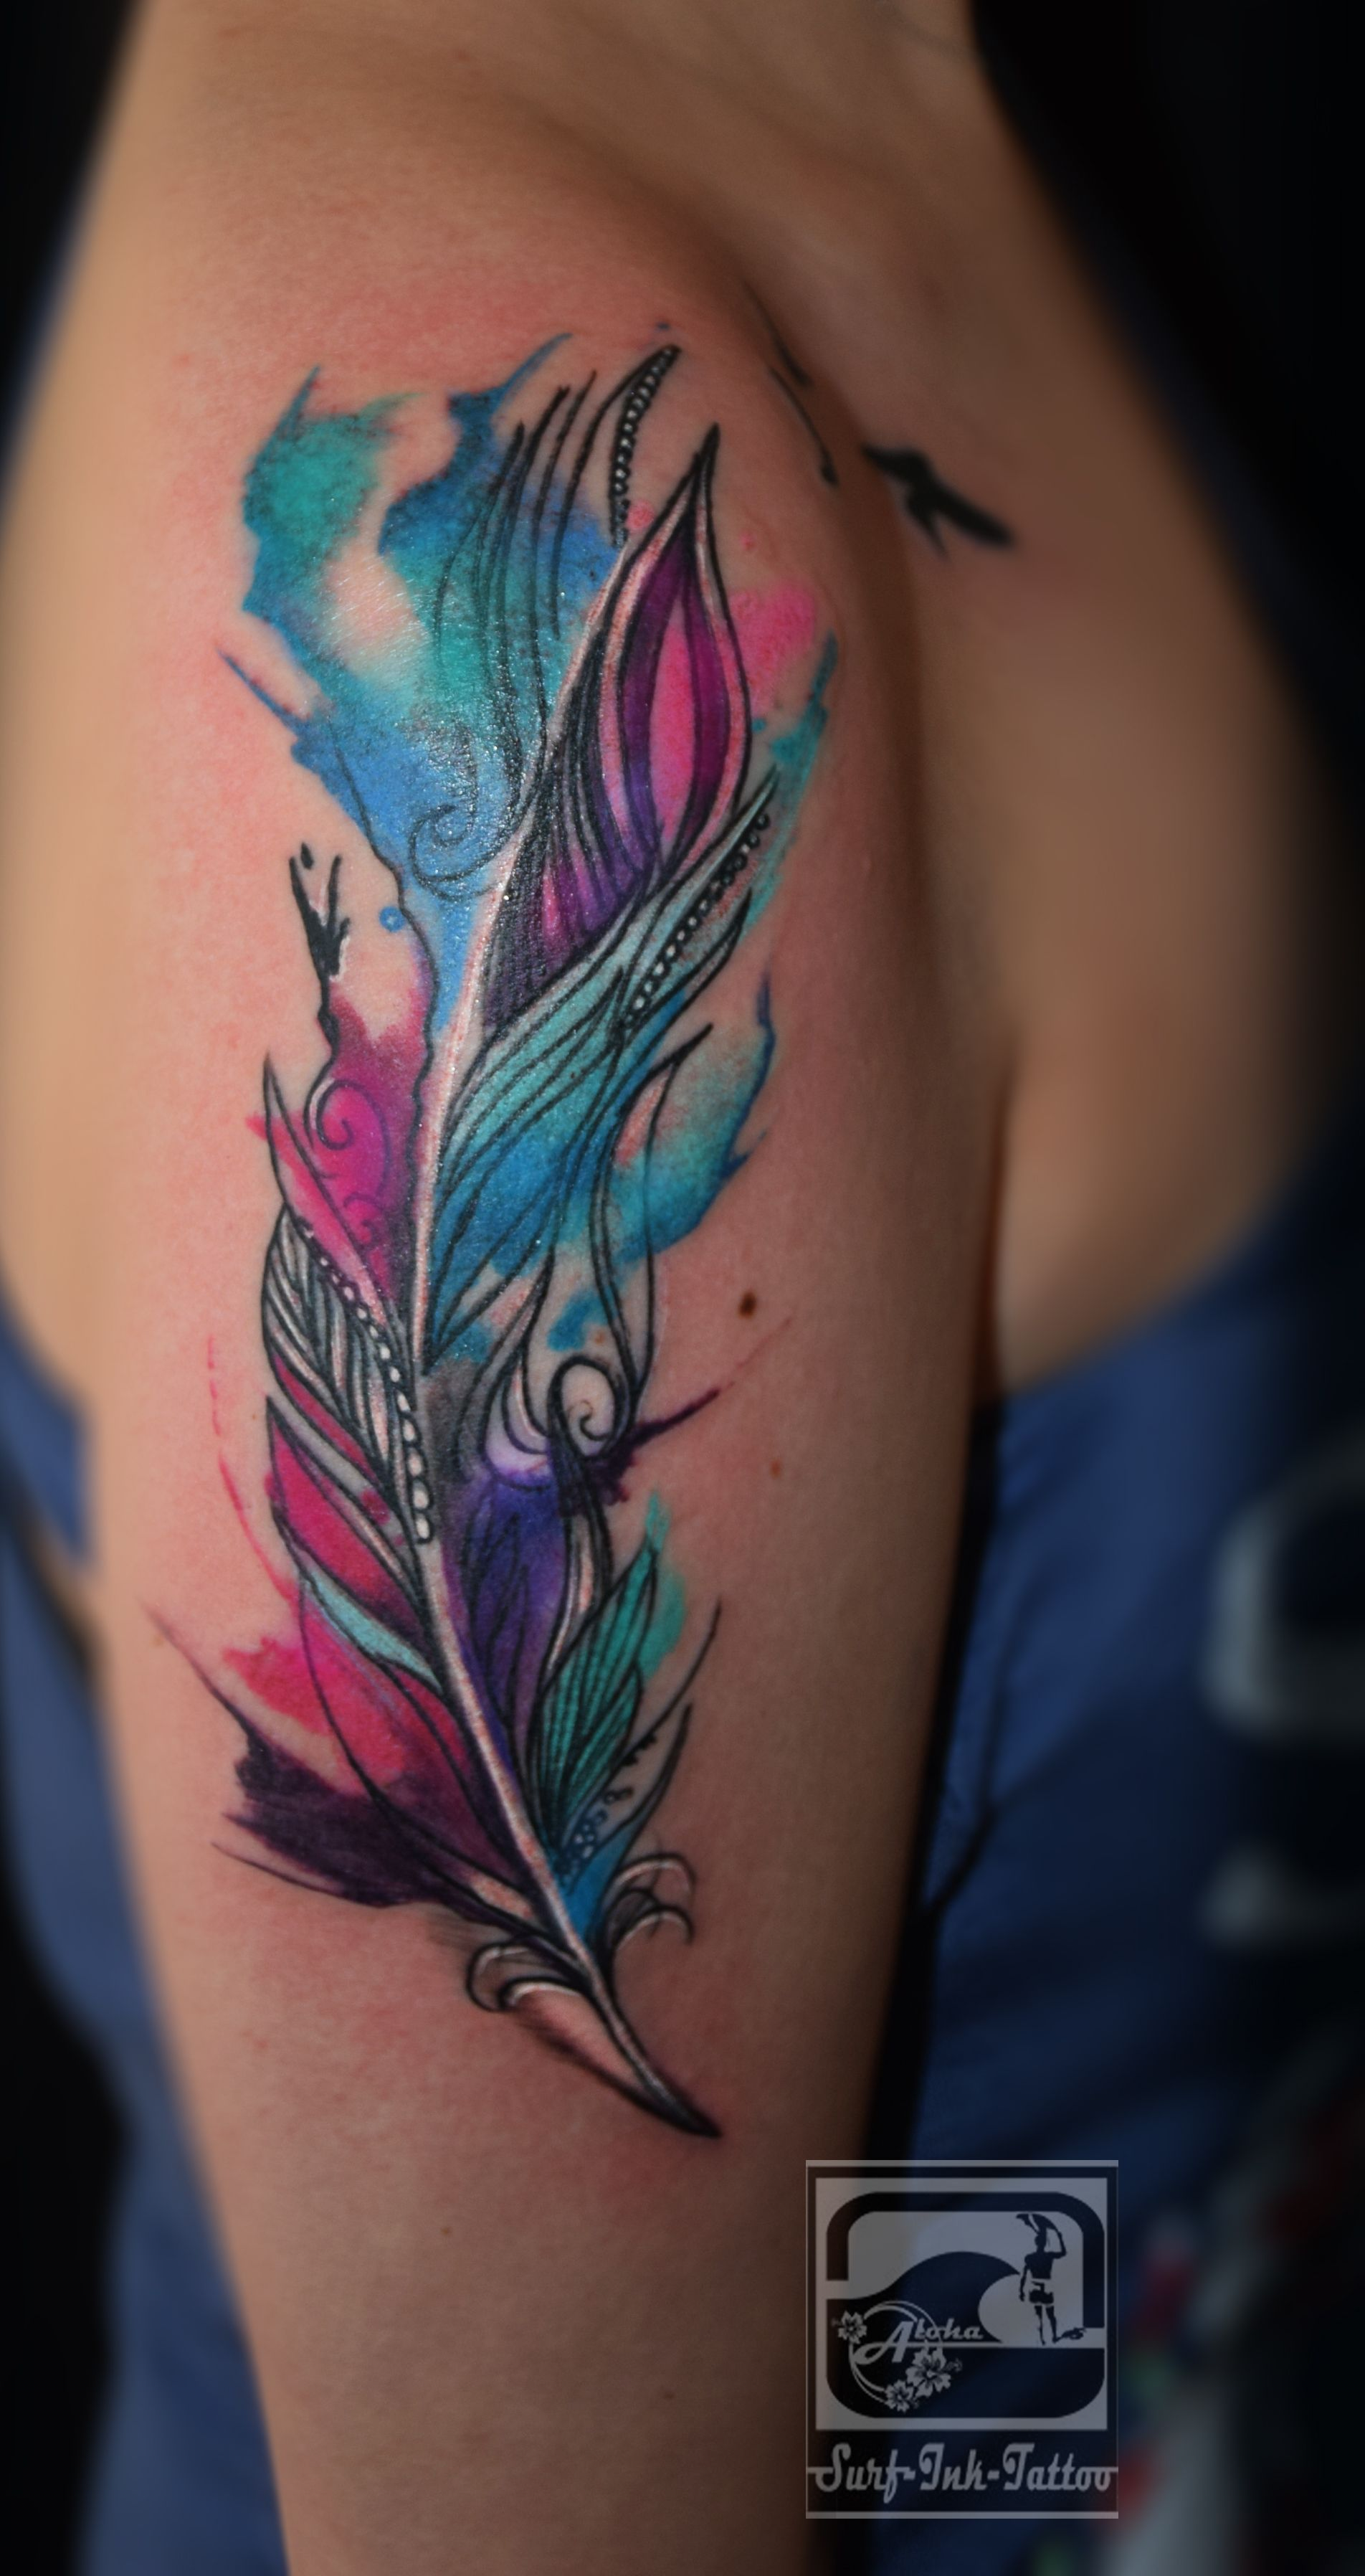 Watercolour Feder Watercolour Tattoo Watercolor Tattoo Aquarell